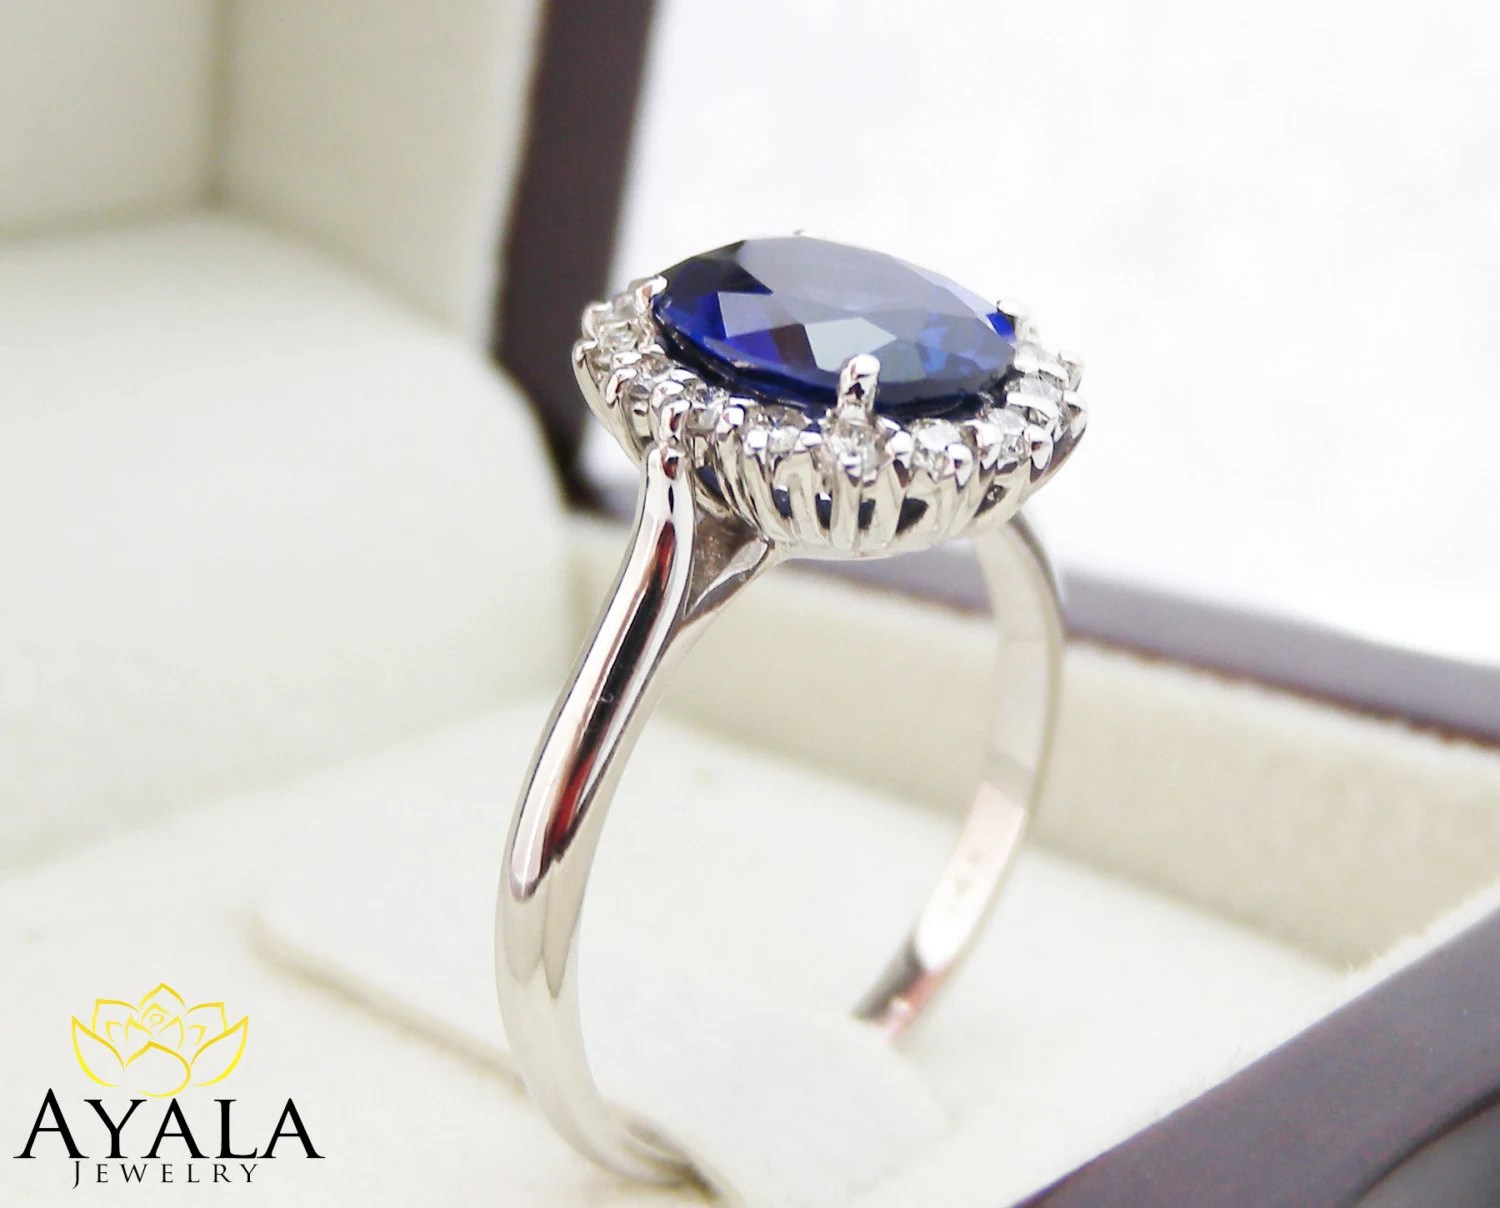 diana ring 14k white gold blue sapphire blue sapphire wedding rings Engagement Ring Blue Sapphire Ring Princess Diana Ring zoom